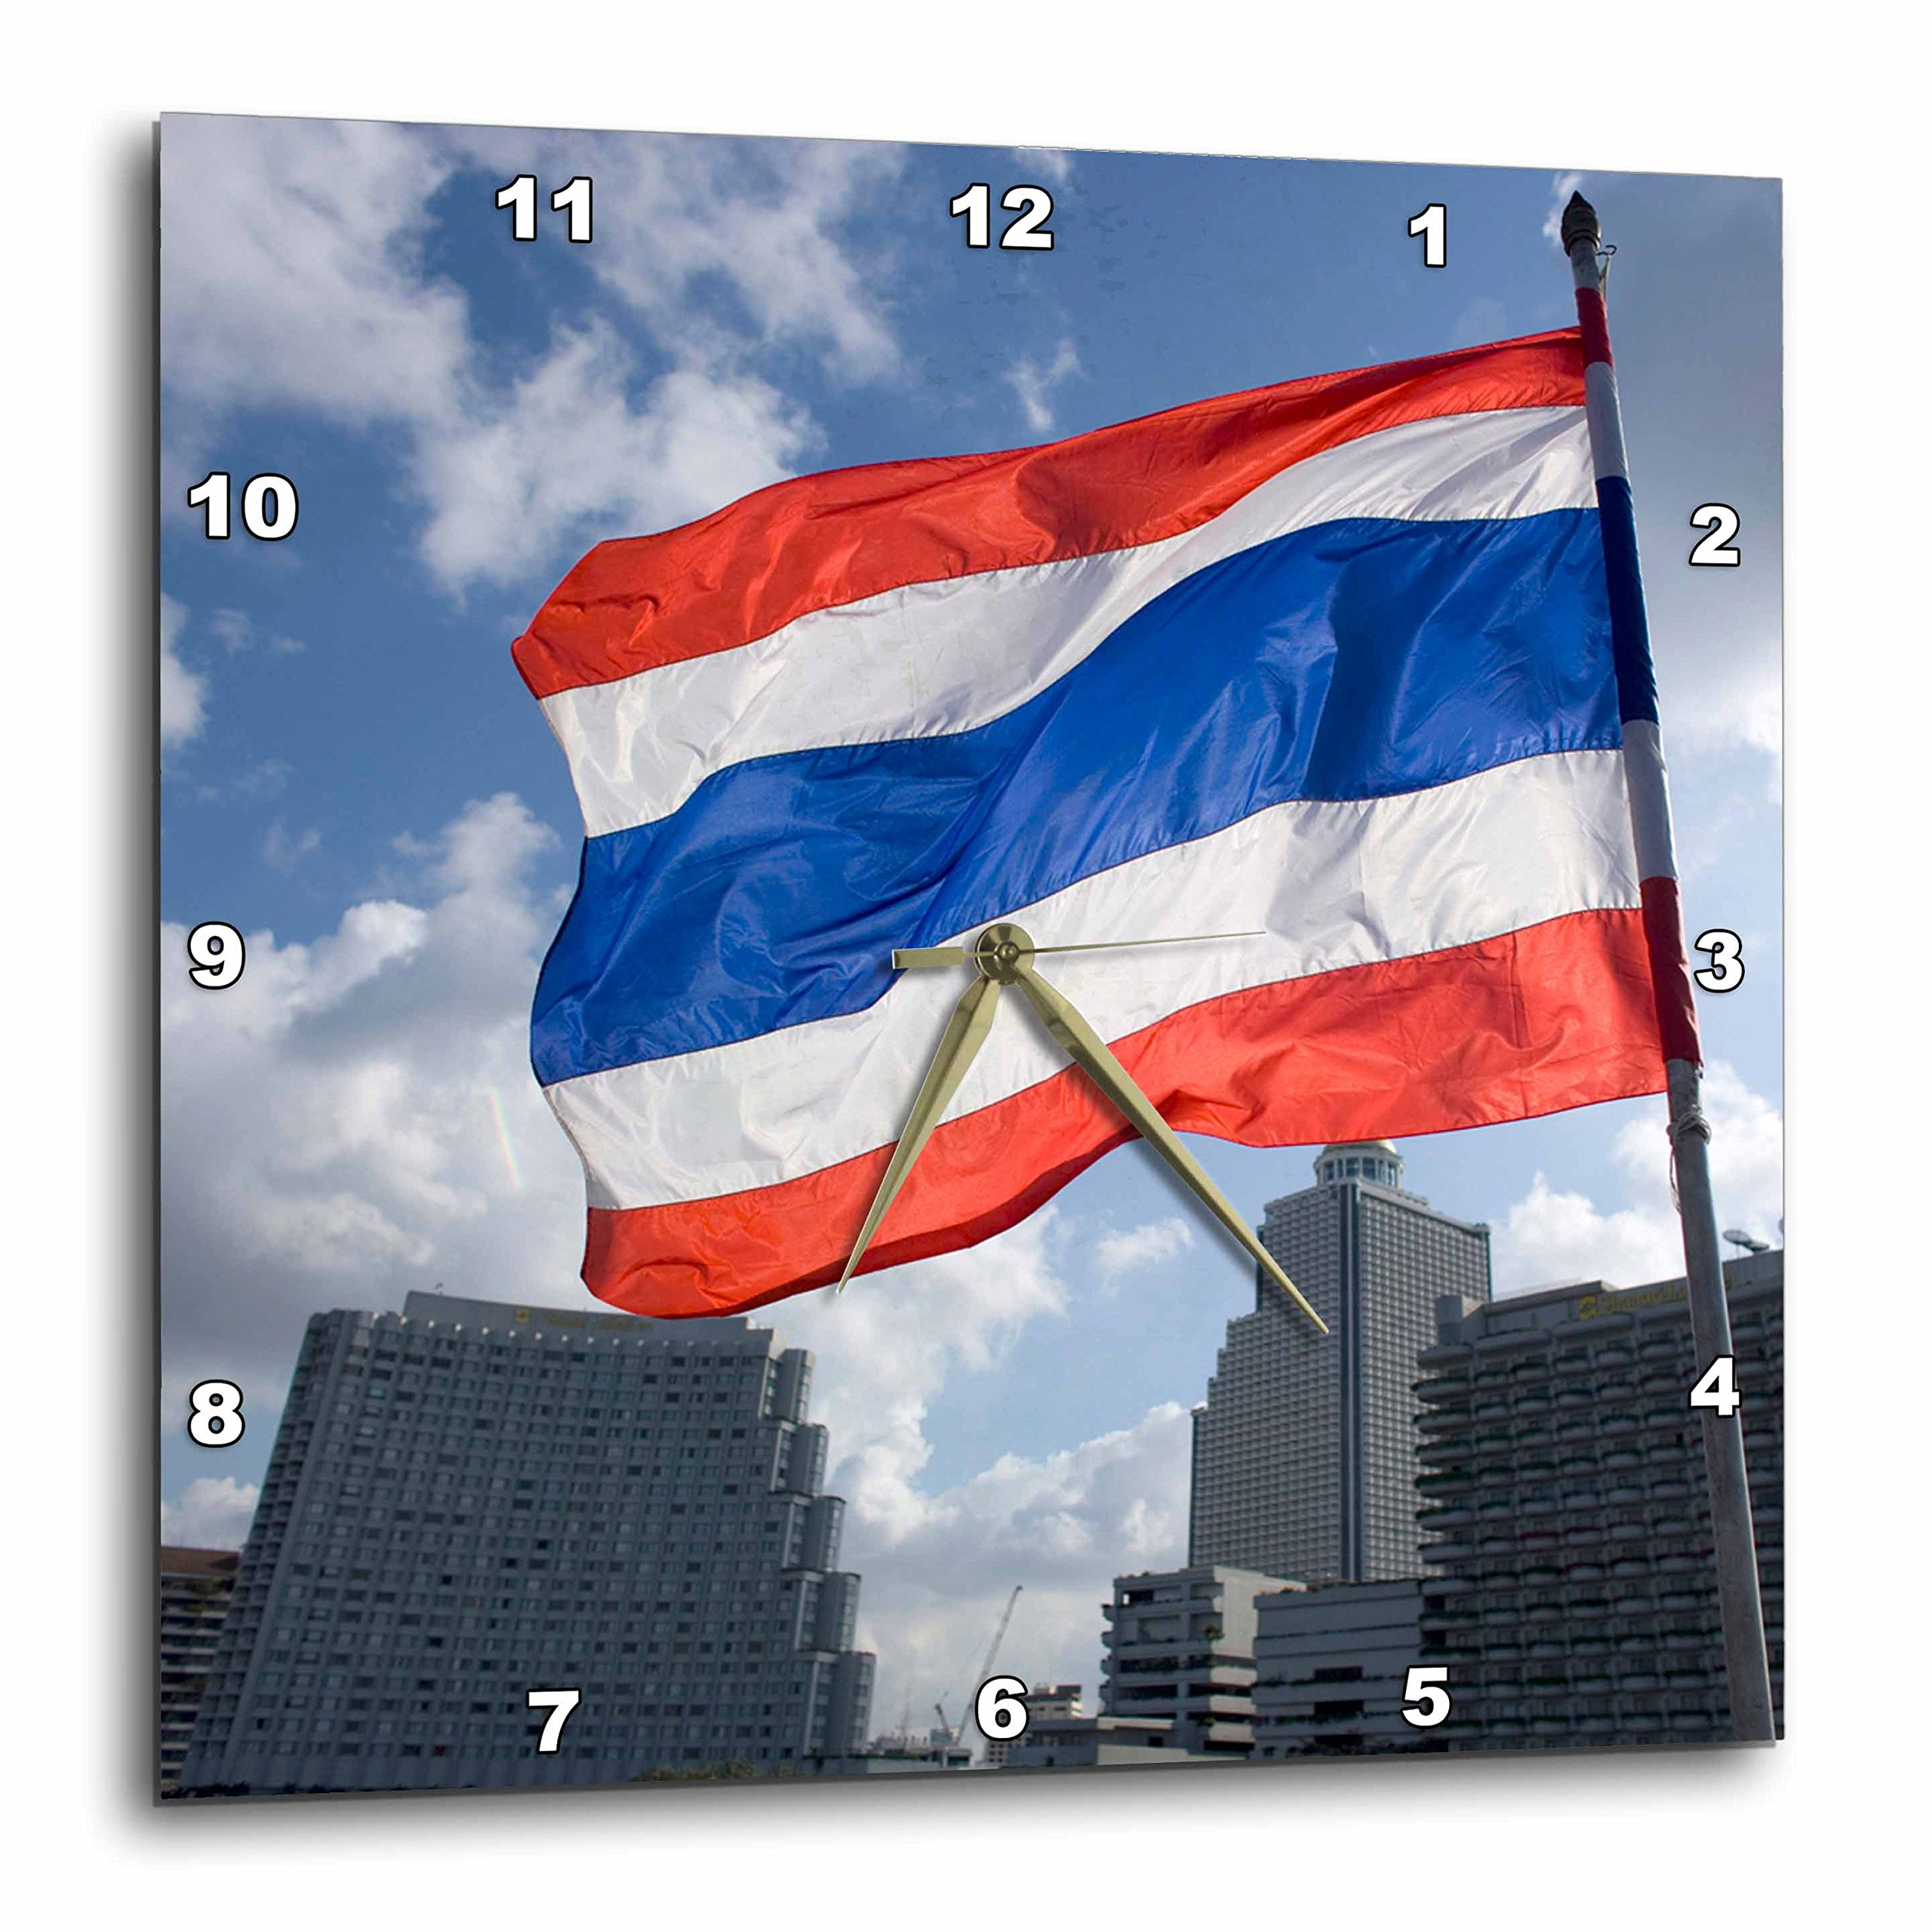 3dRose dpp_72068_3 Thai Flag & Kings Flag, Thailand-As36 Ryo0049 Russell Young Wall Clock, 15 by 15''